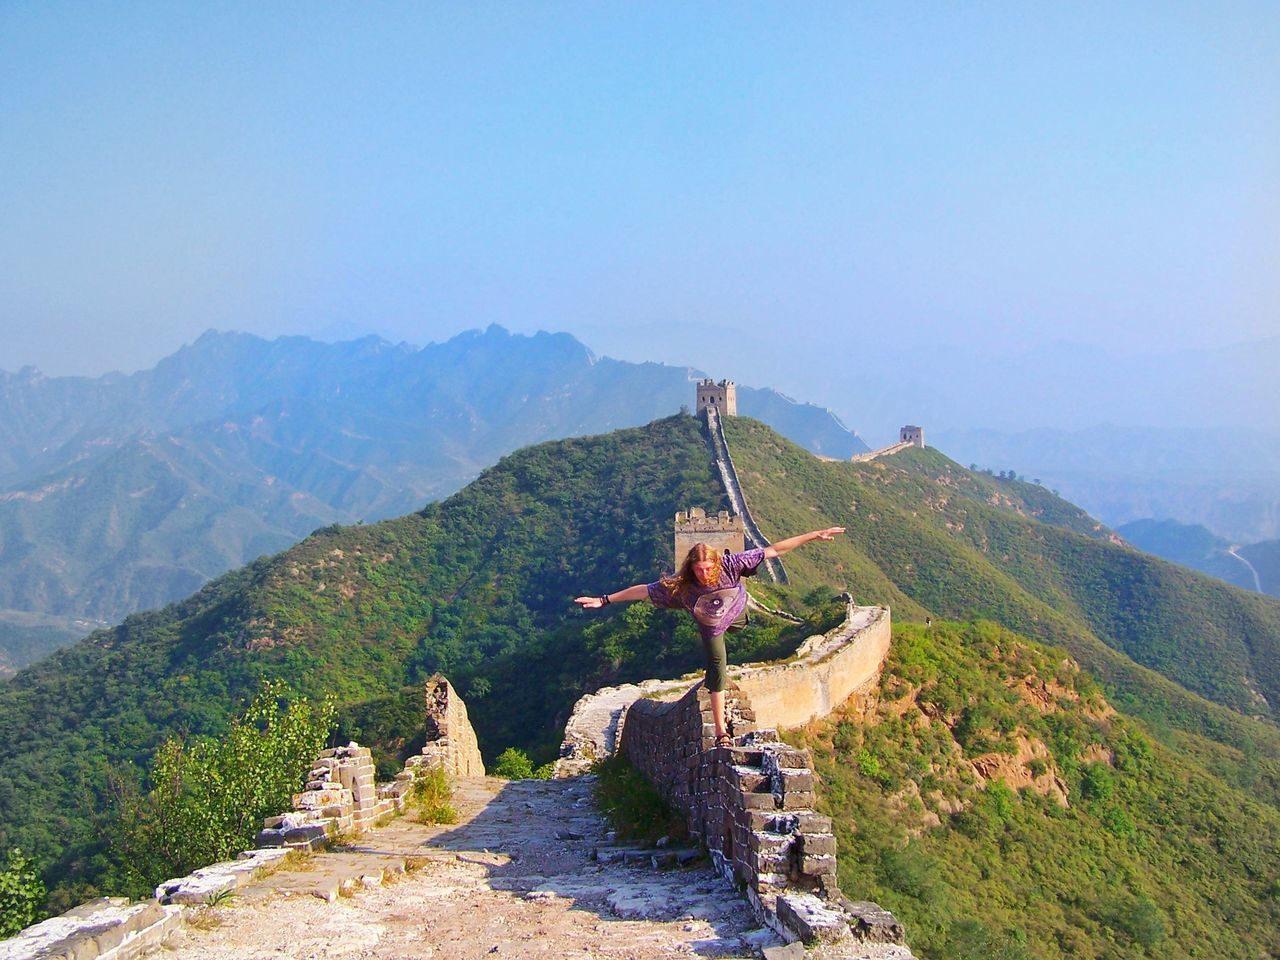 Mountain Travel Destinations Adults Only Hand Raised Full Length Outdoors One Person Happiness Nature Adult Cultures Great Wall Of China Wall Young Adult Back Leg Scale Scale  Gymnastics Jin Jang Yin Yang Guy Man One Foot On The Ground One Foot Bricks China TCPM The Great Outdoors - 2017 EyeEm Awards Live For The Story